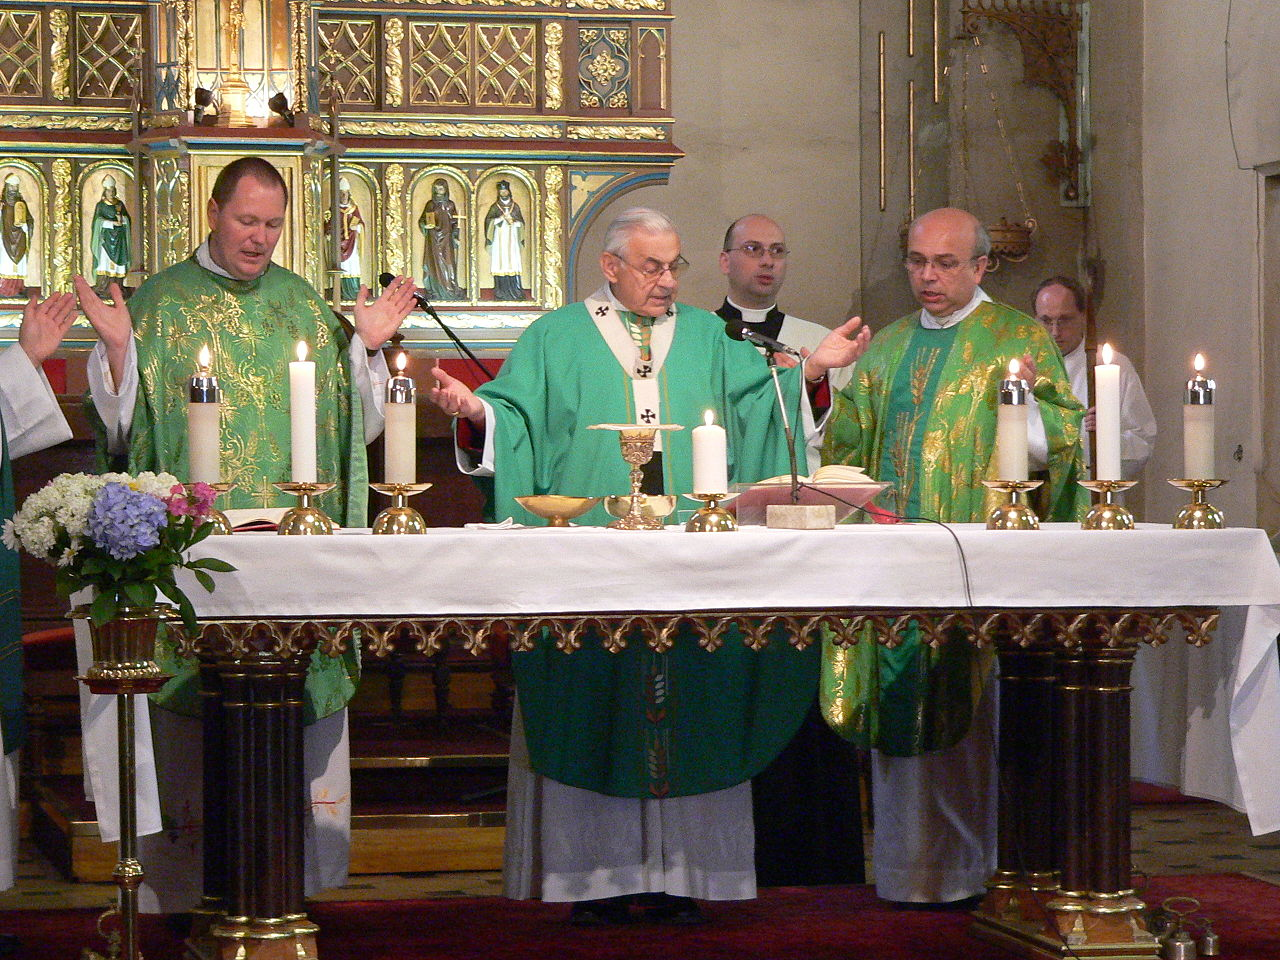 Holy Mass celebrated by Cardinal Miloslav Vlk during the International Youth Congress of Esperanto in the St. Anthony the Great Church